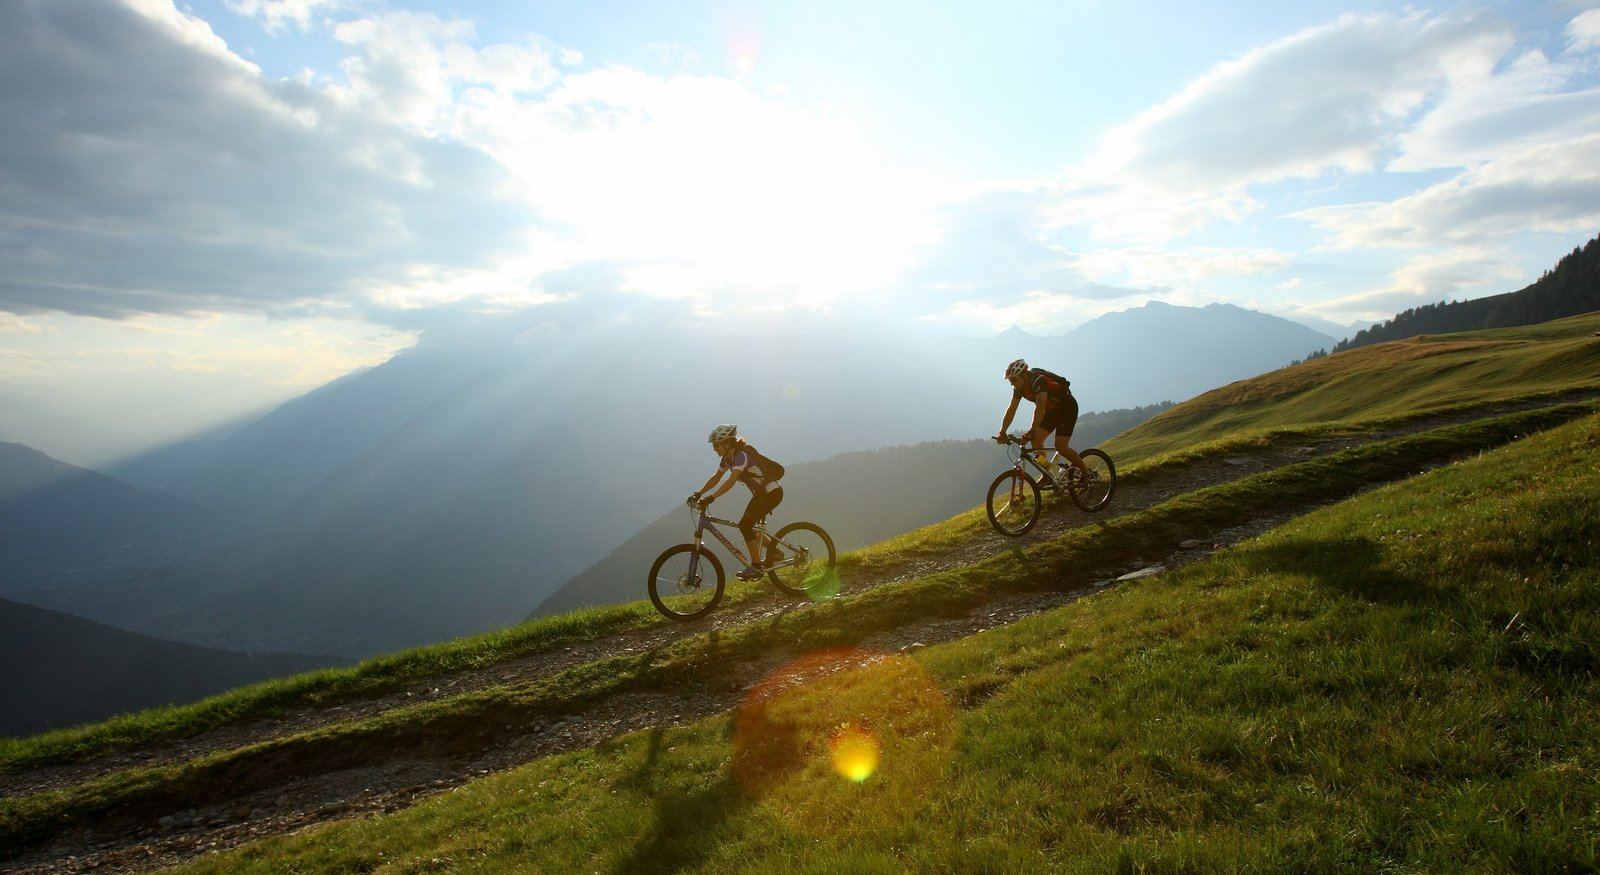 Spannende Mountainbike Tour in Partschins